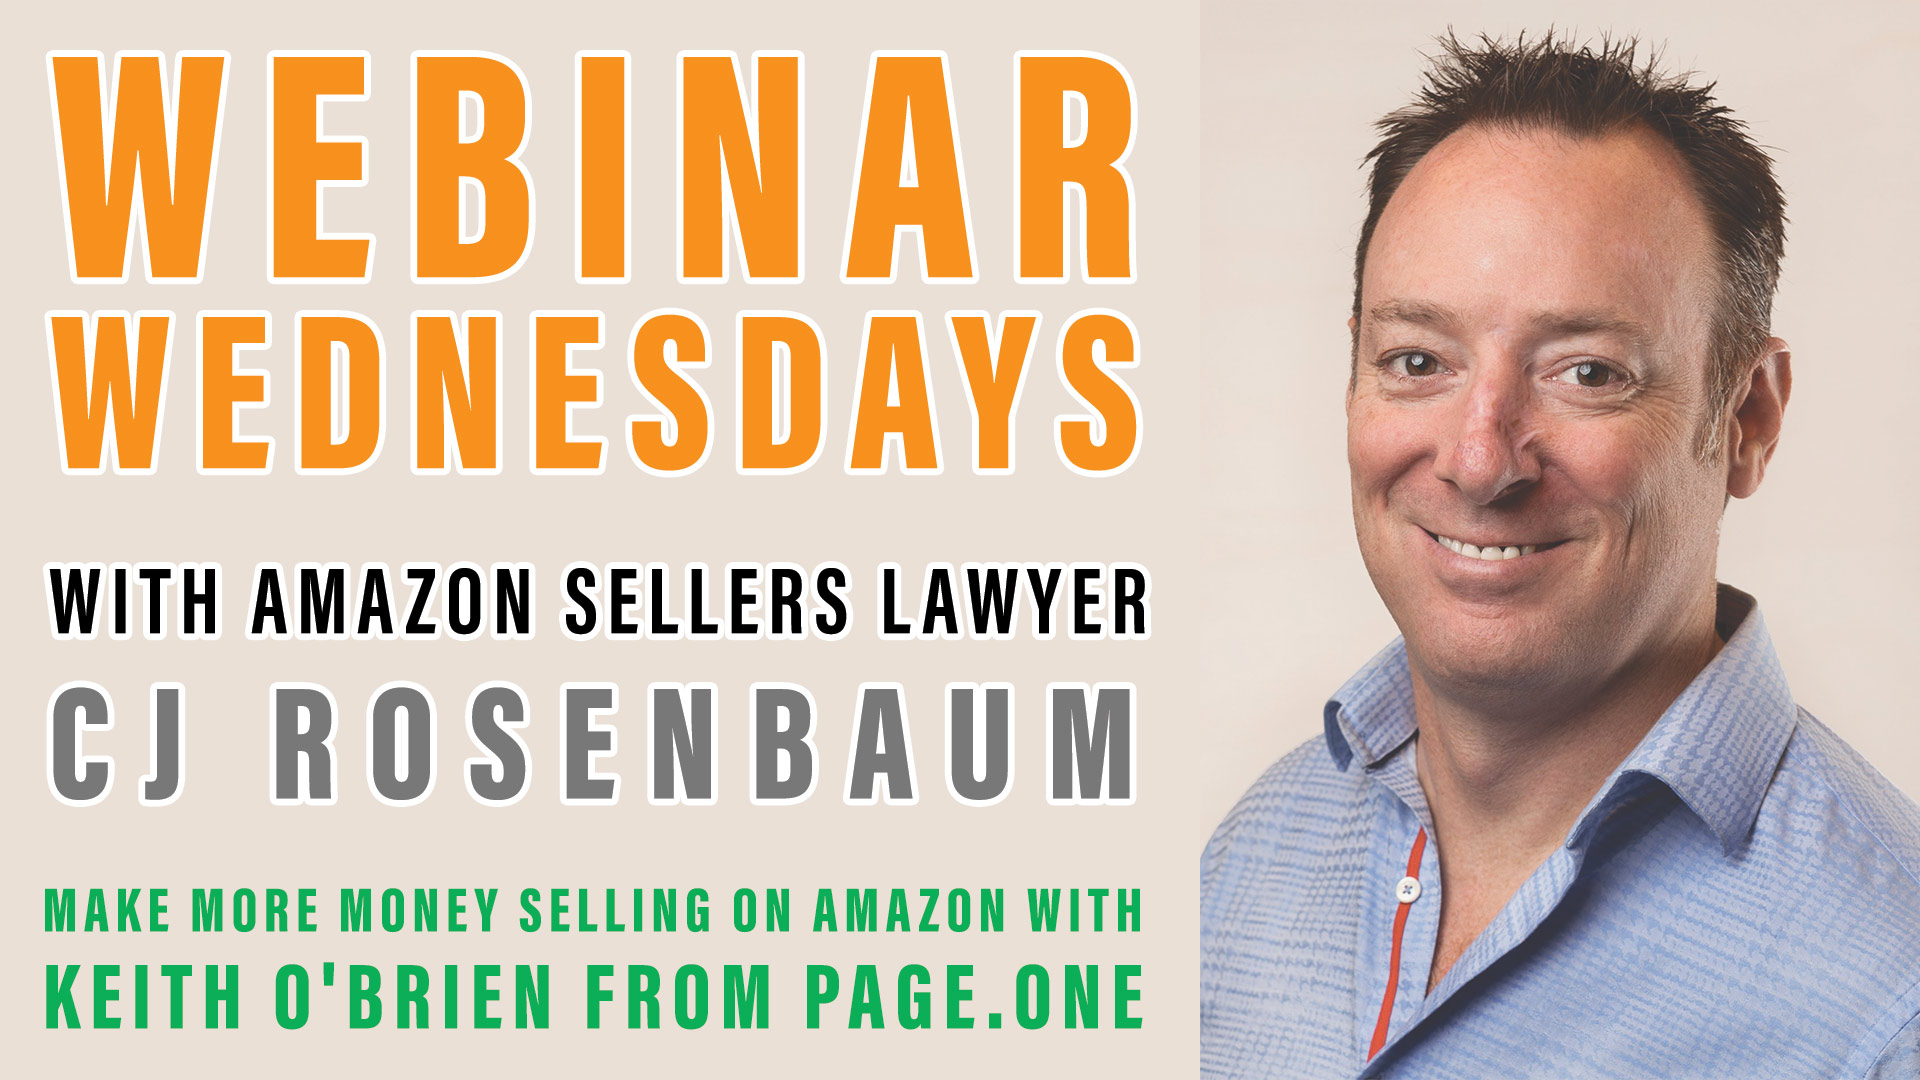 webinar - Make More Money Selling on Amazon with Keith O'Brien from Page.One